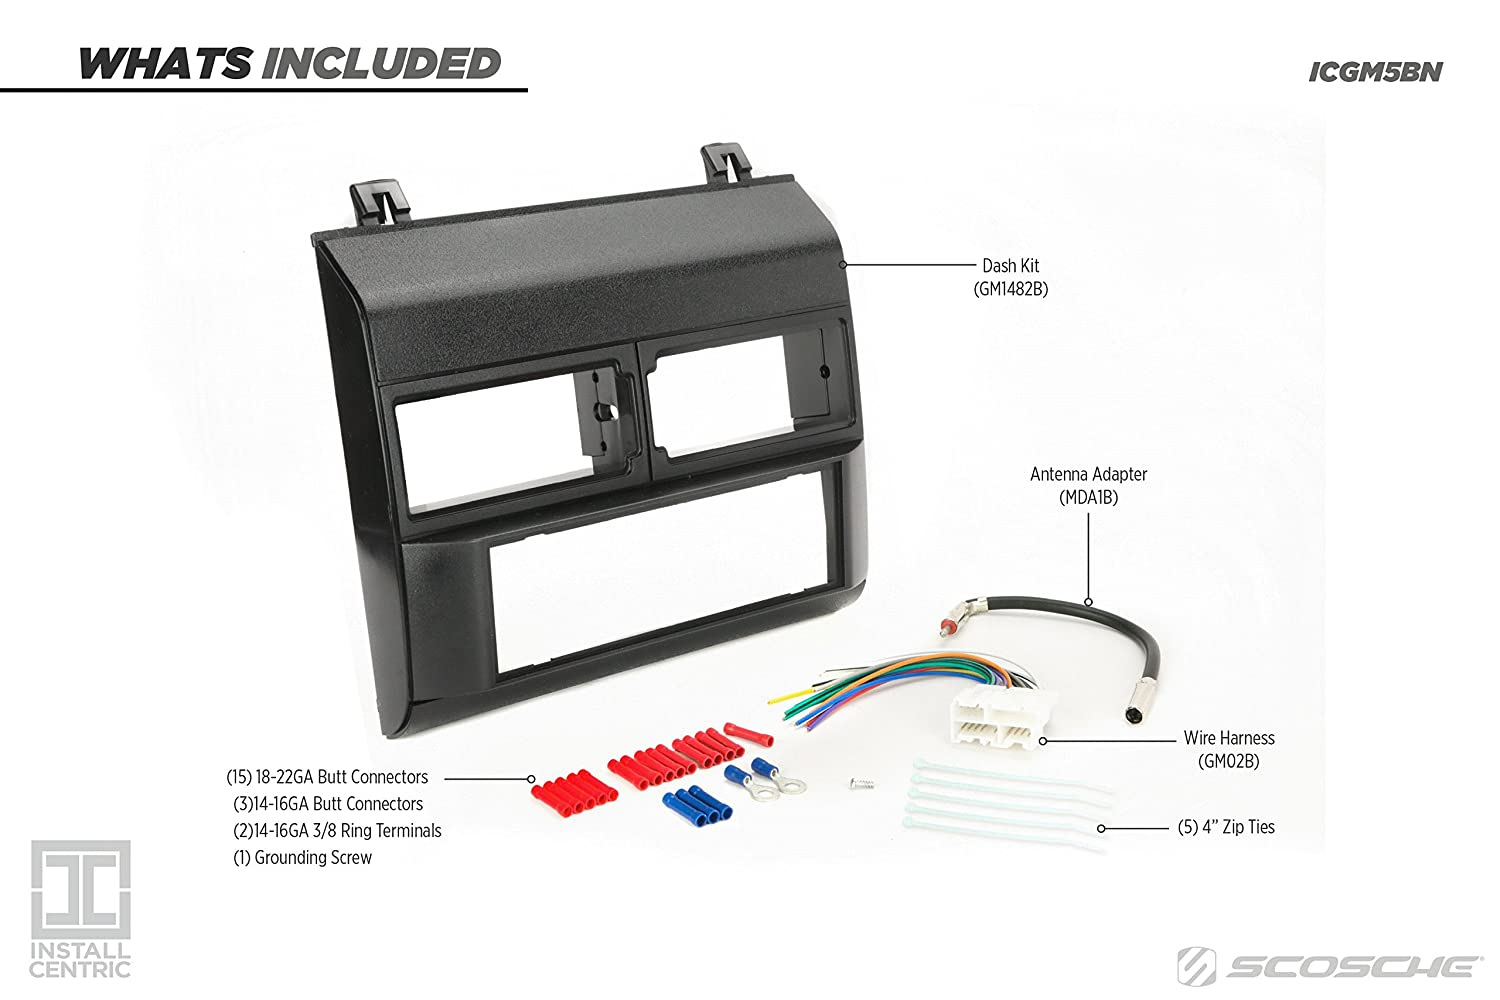 Install Centric ICGM4BN GMC//Chevrolet Full Size 1988-94 Truck BLUE Complete Installation Solution for Car Stereos